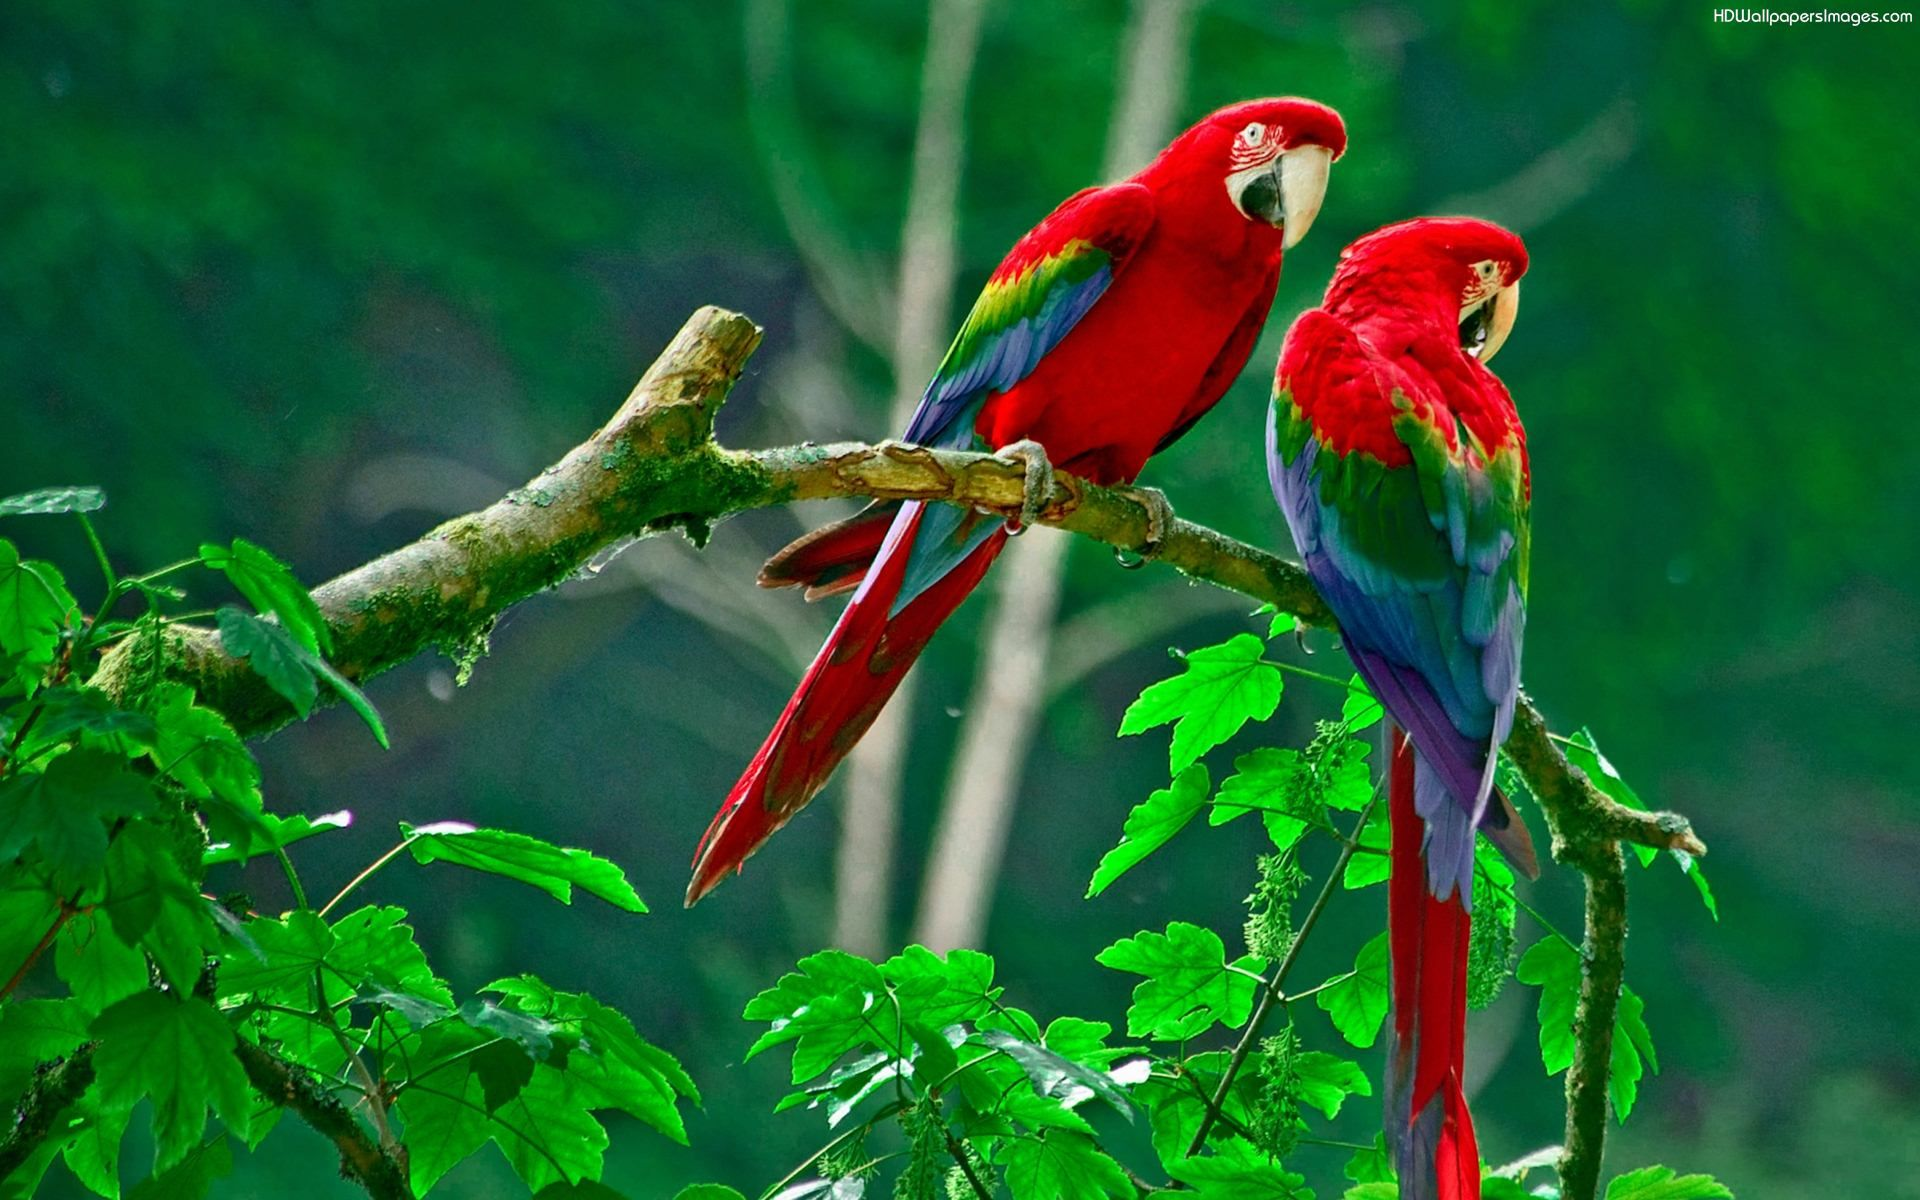 Parot Wallpapers Parrots Couple Hd Wallpapers Images Couples Parrot Wallpaper